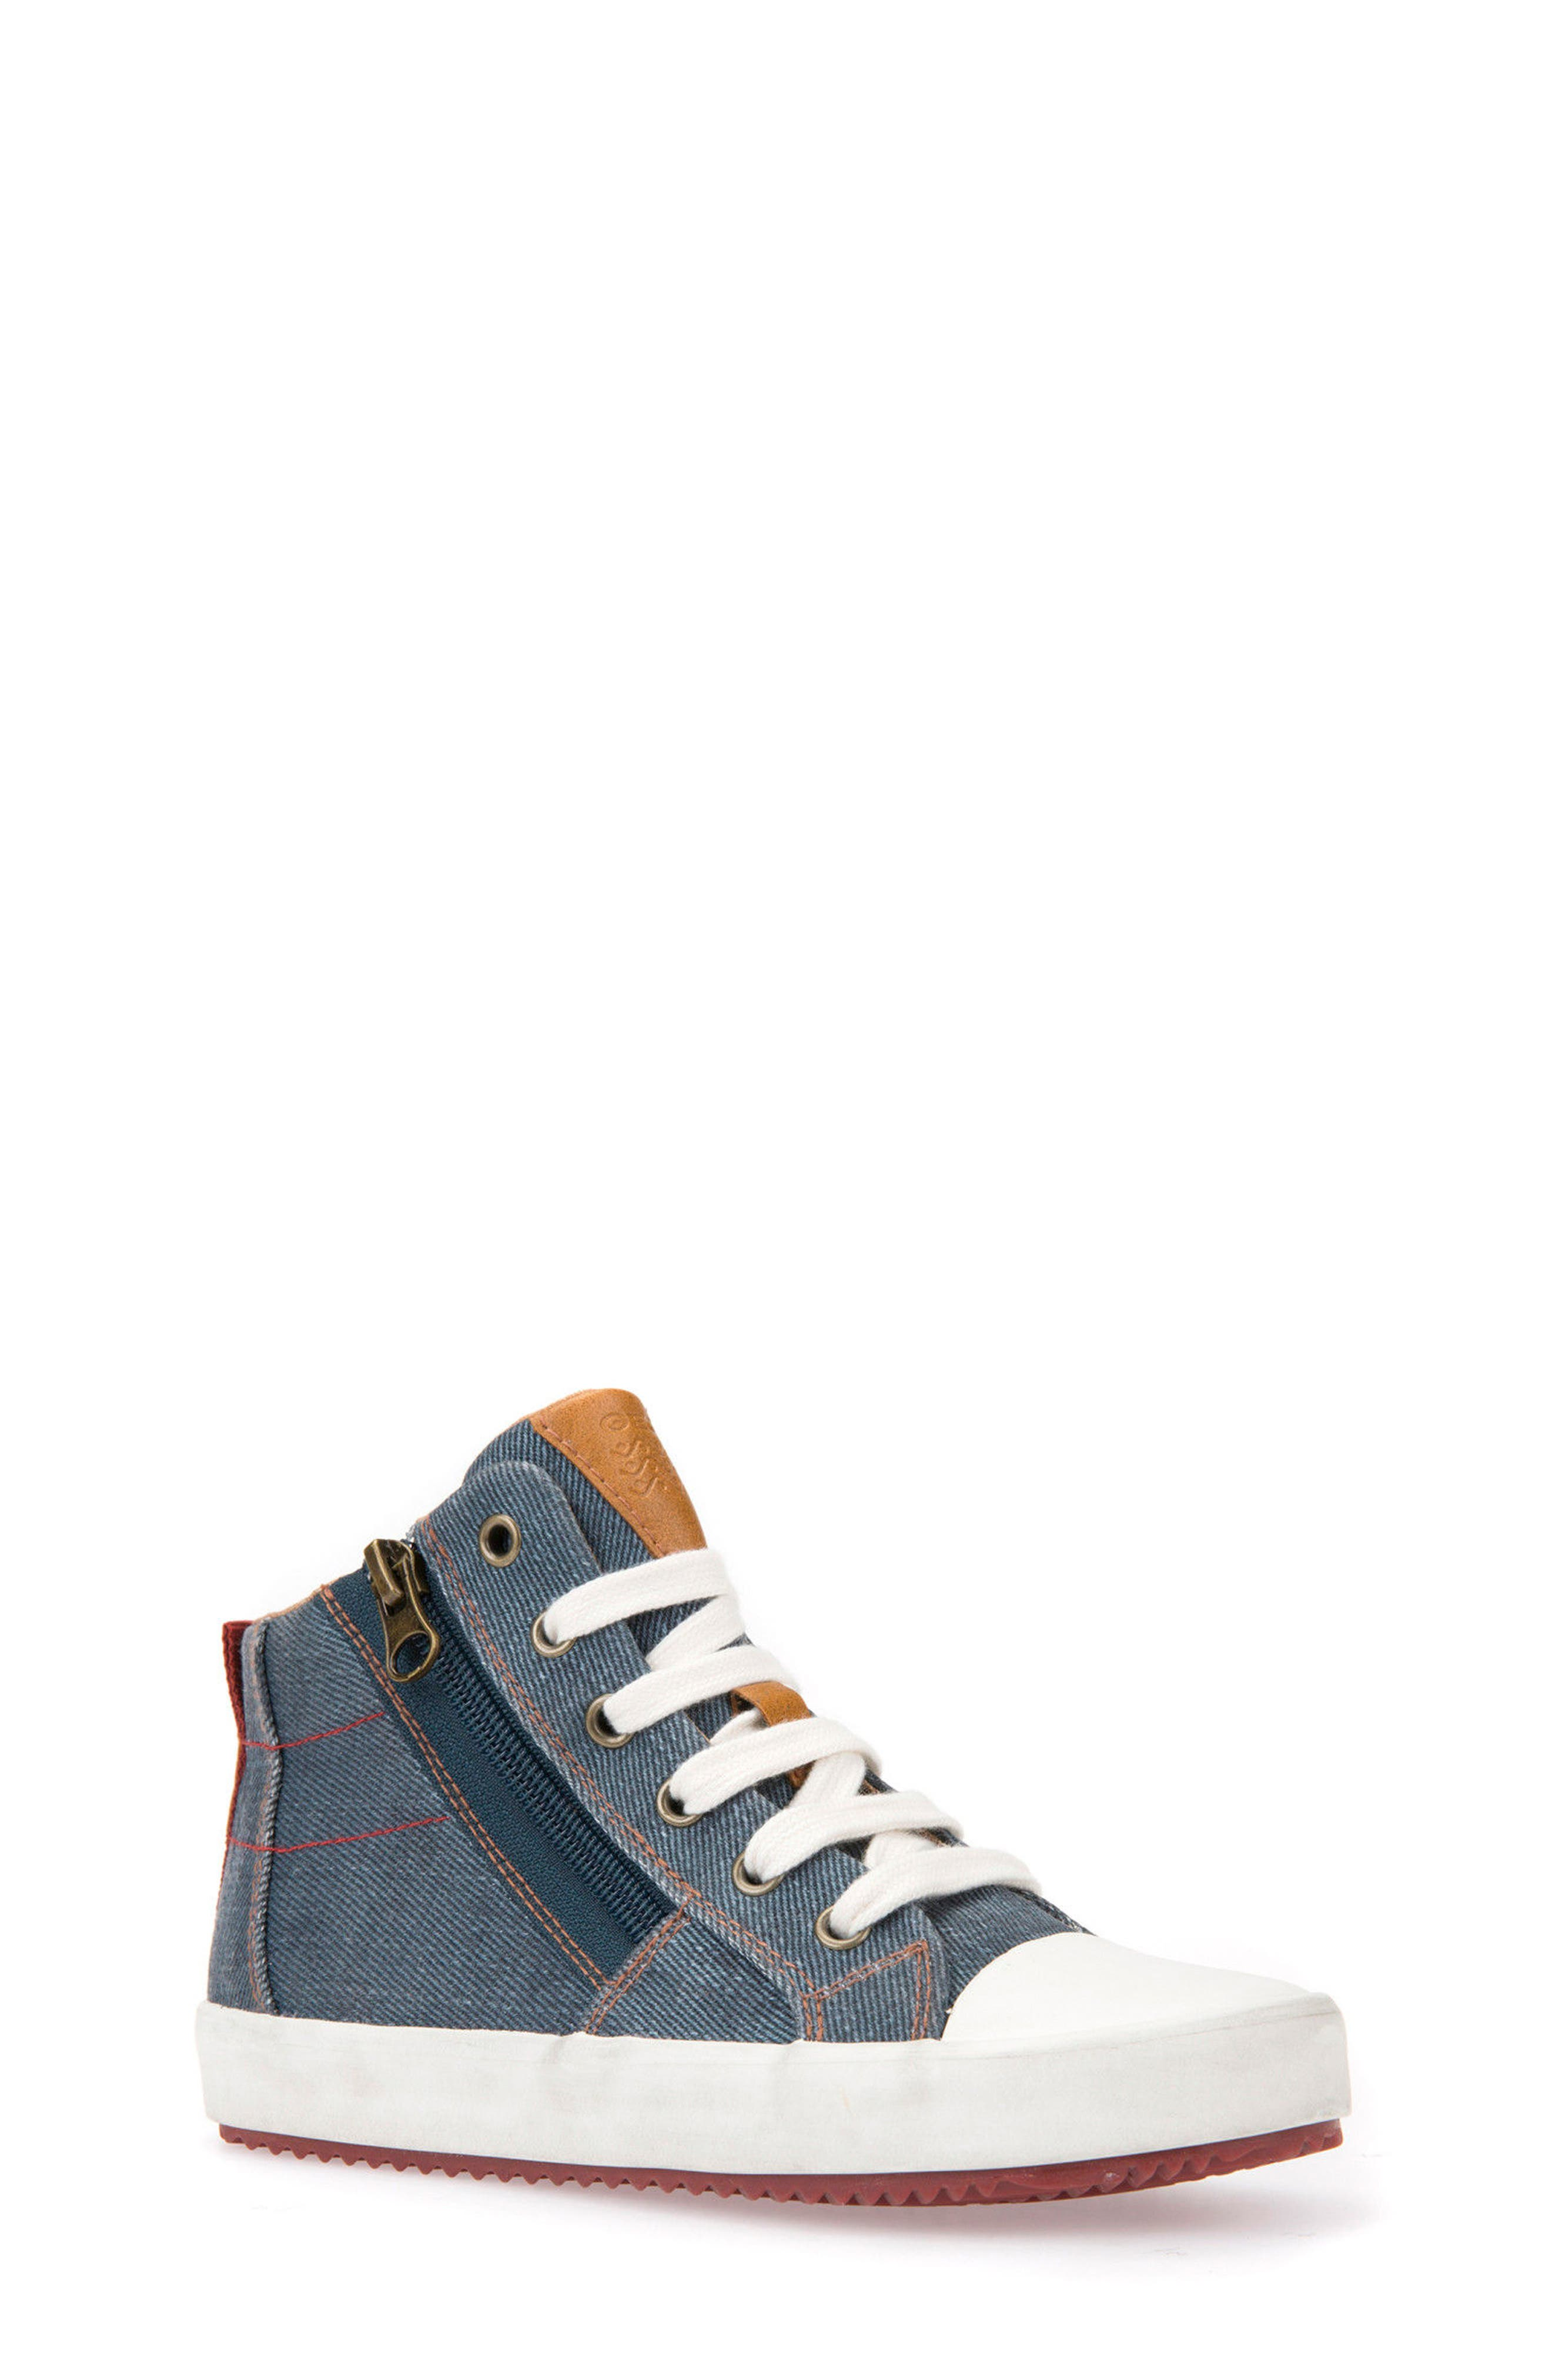 Alonisso High Top Sneaker,                         Main,                         color, 426